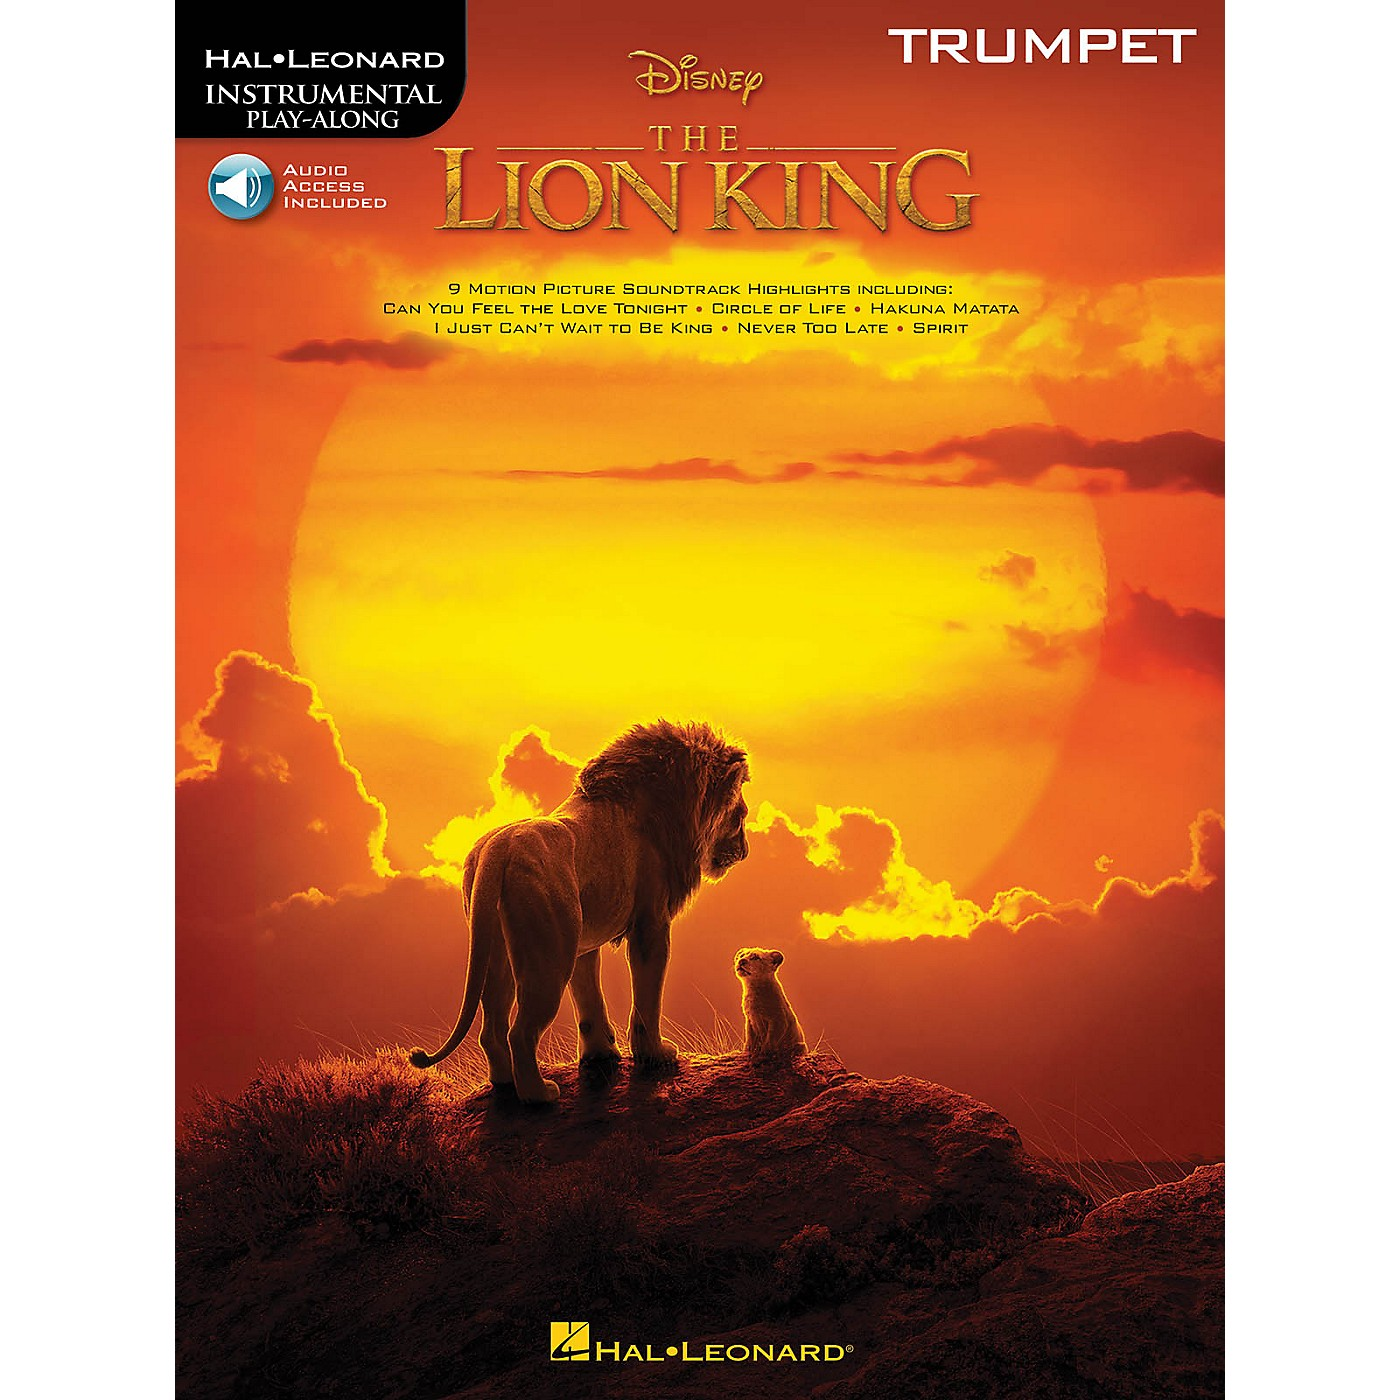 Hal Leonard The Lion King for Trumpet Instrumental Play-Along Book/Audio Online thumbnail